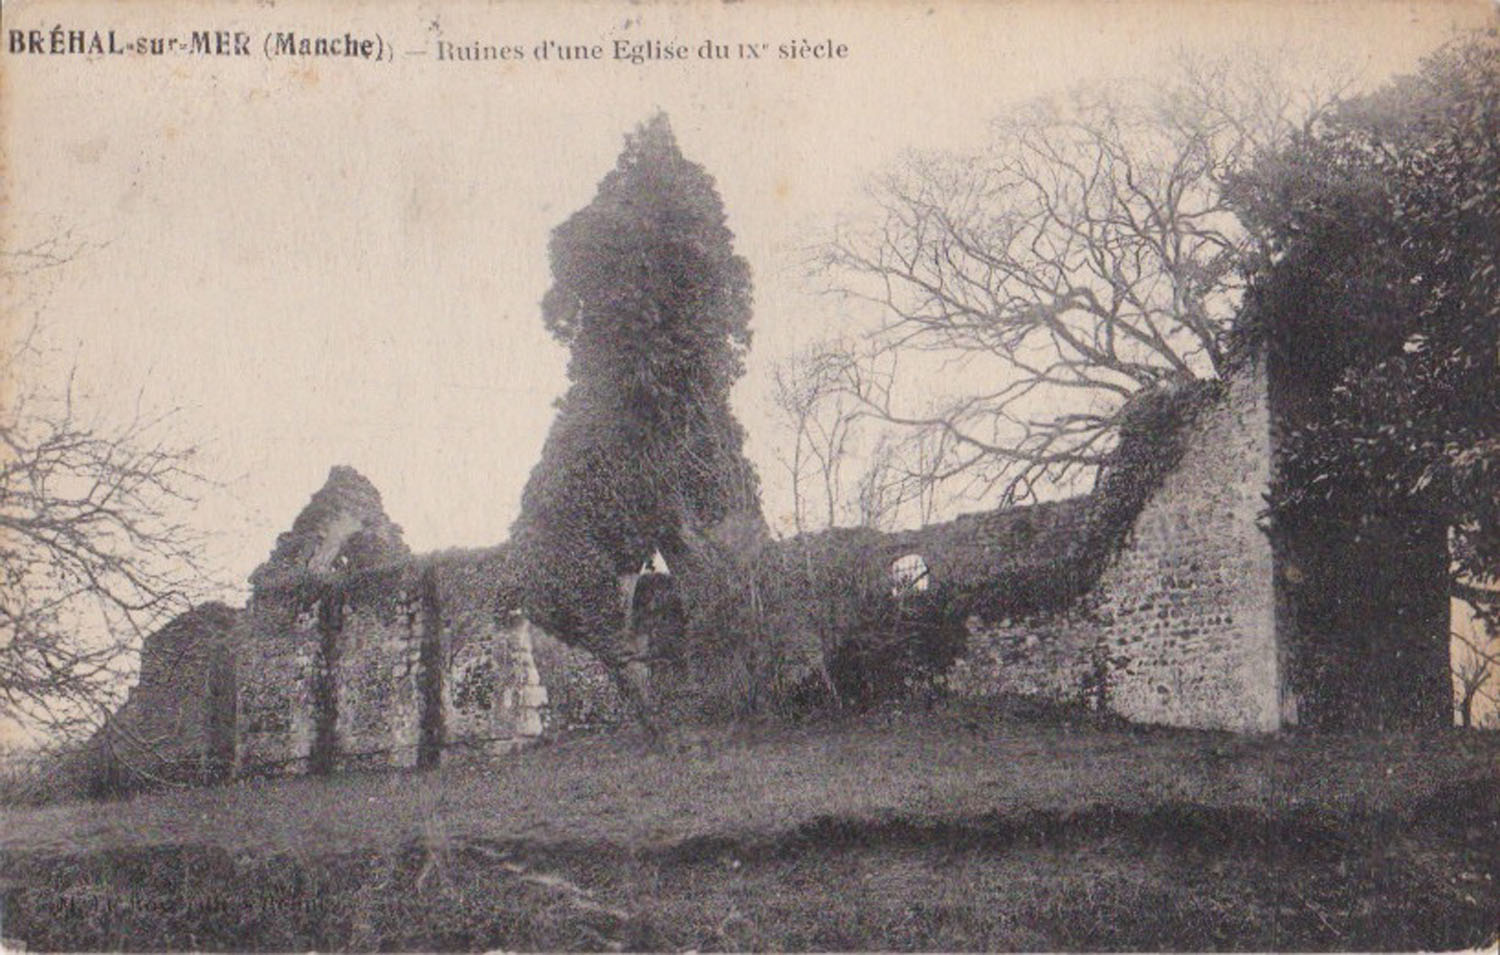 1910 Vieux St Martin Eglise 1 © collection Jean Claude Ferret